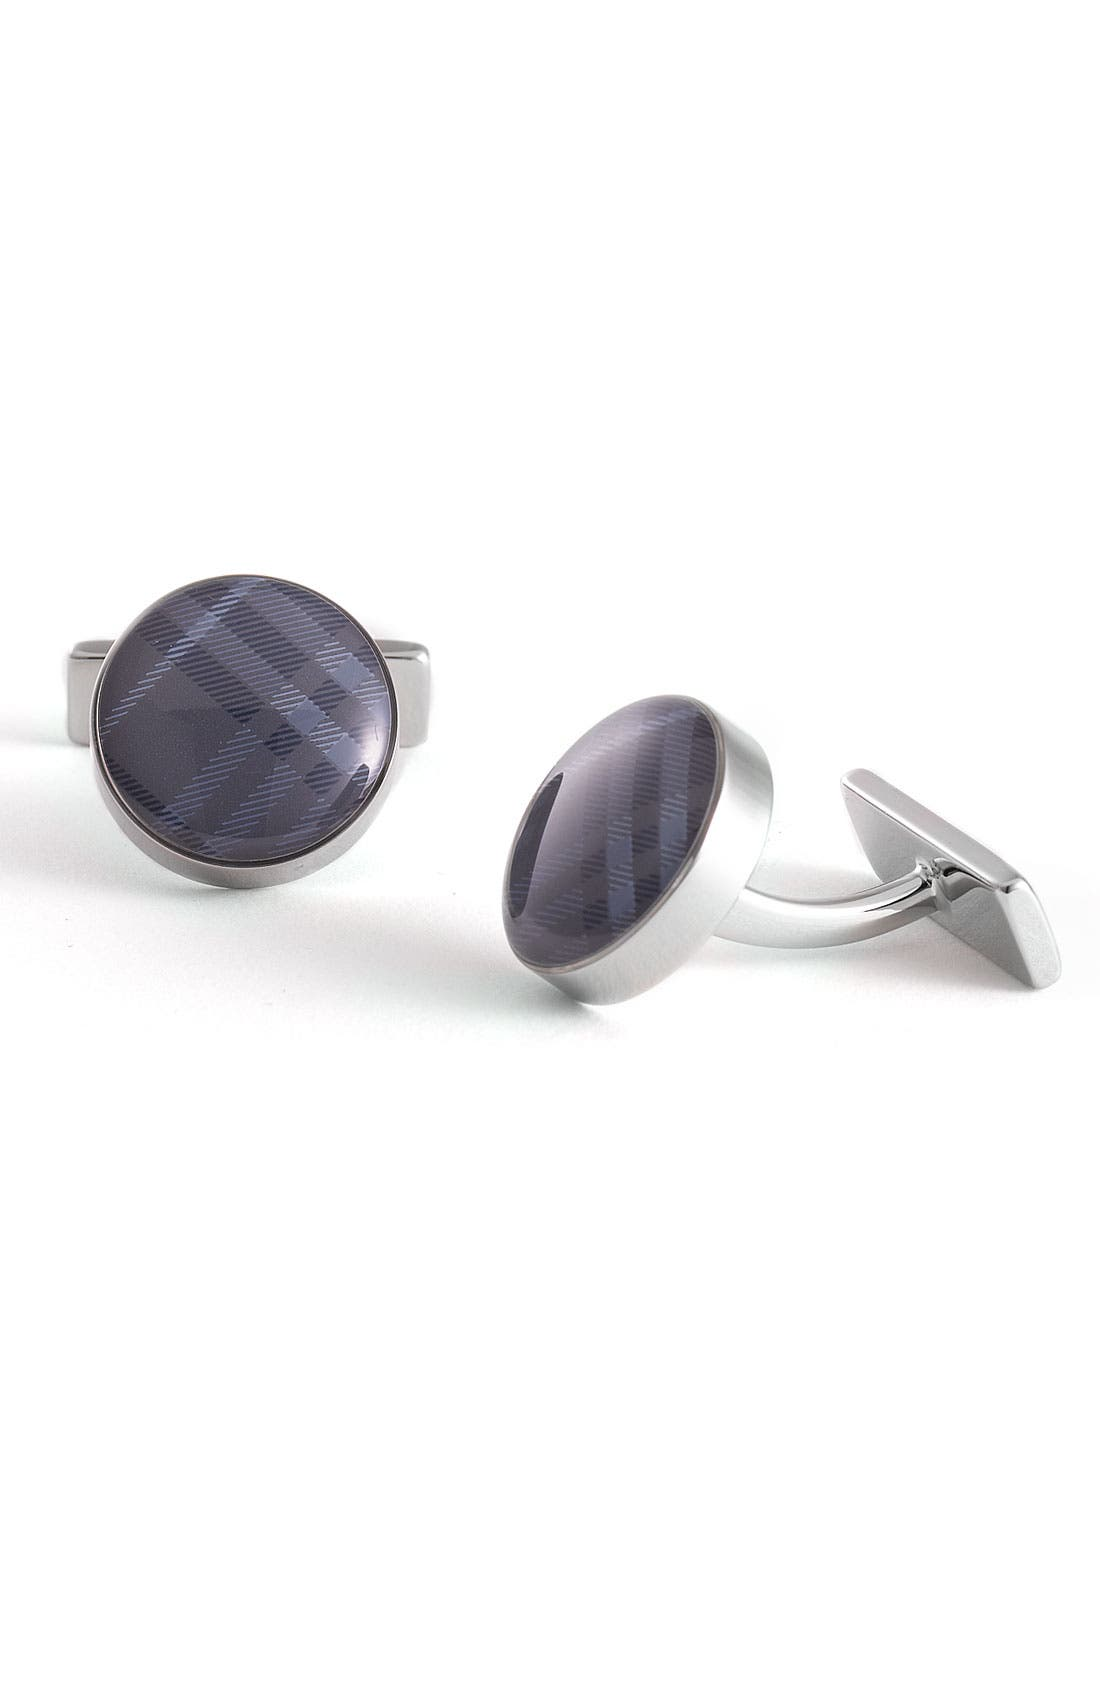 Alternate Image 1 Selected - Burberry Check Round Cuff Links